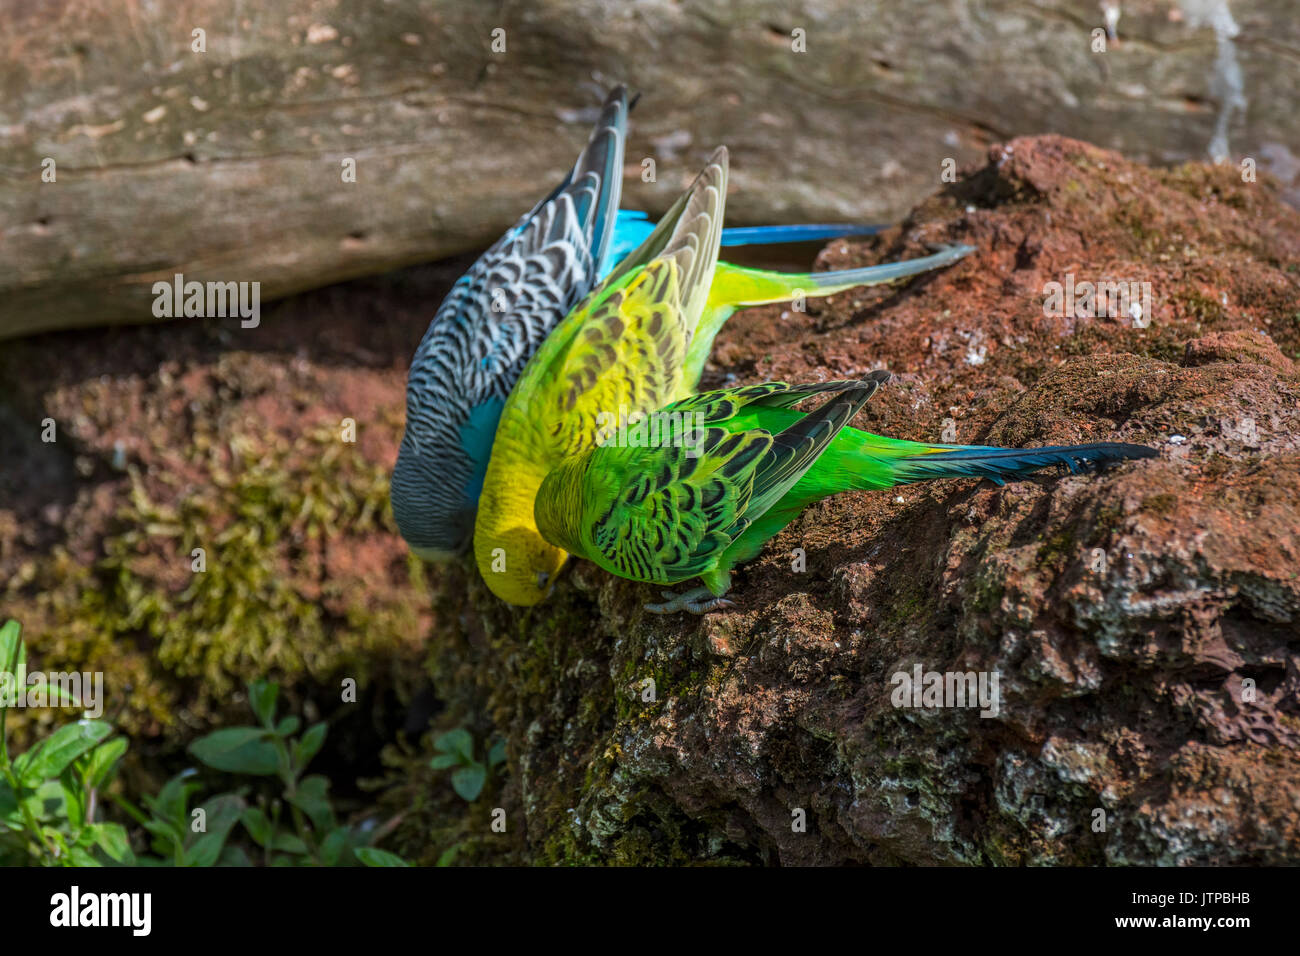 Colourful budgerigars / budgies / common parakeets (Melopsittacus undulatus) native to Australia eating minerals from rock - Stock Image